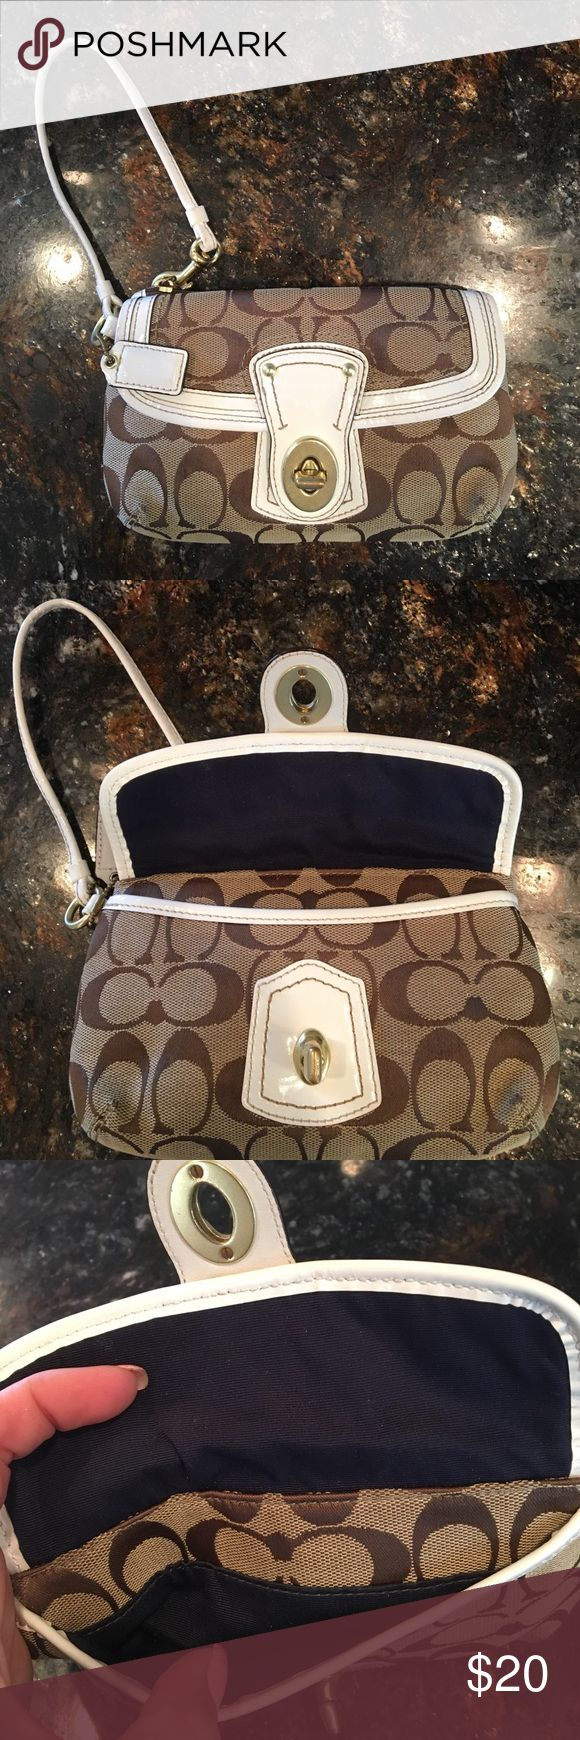 Coach Wristlet Hardly used tan, white and navy Coach wristlet. Front flap opens and has room to hold a cell phone. Back zipper has enough room for cards, cash, chap stick etc. Coach Bags Clutches & Wristlets